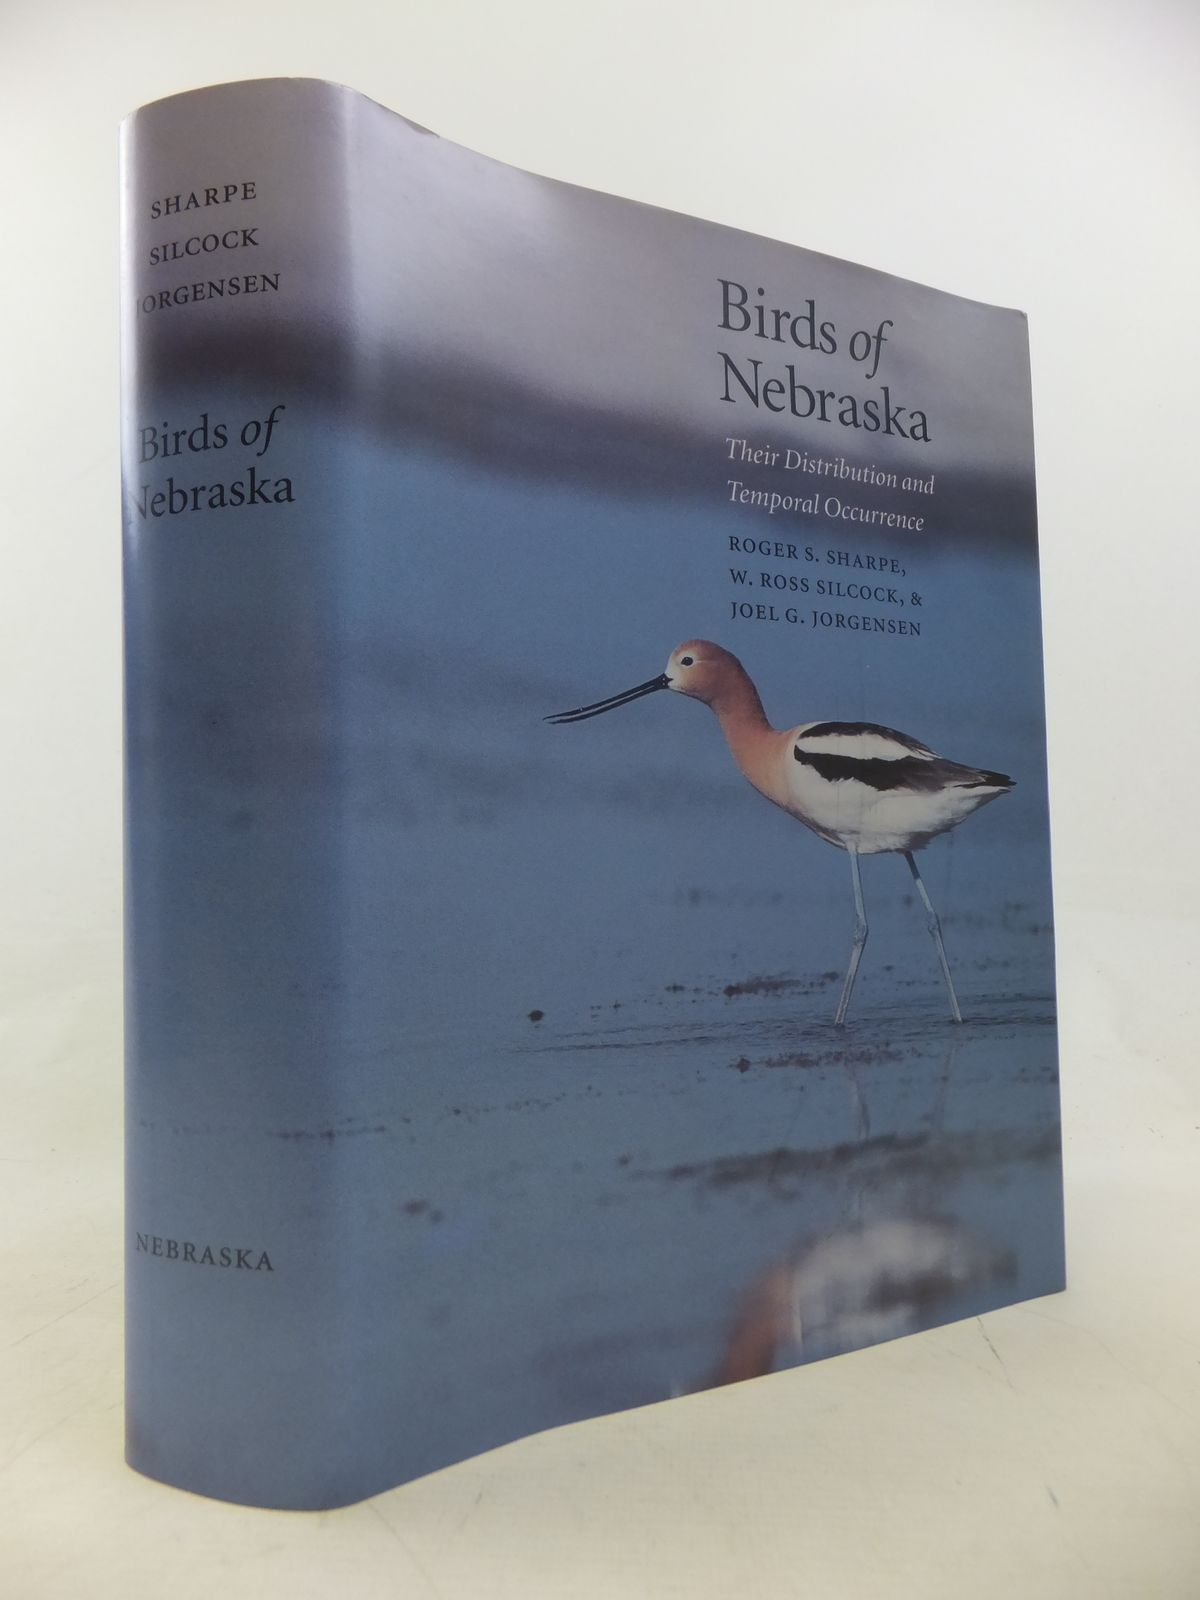 Photo of BIRDS OF NEBRASKA THEIR DISTRIBUTION & TEMPORAL OCCURRENCE written by Sharpe, Roger S. Silcock, W. Ross Jorgensen, Joel G. published by Univeristy Of Nebraska Press (STOCK CODE: 1811150)  for sale by Stella & Rose's Books